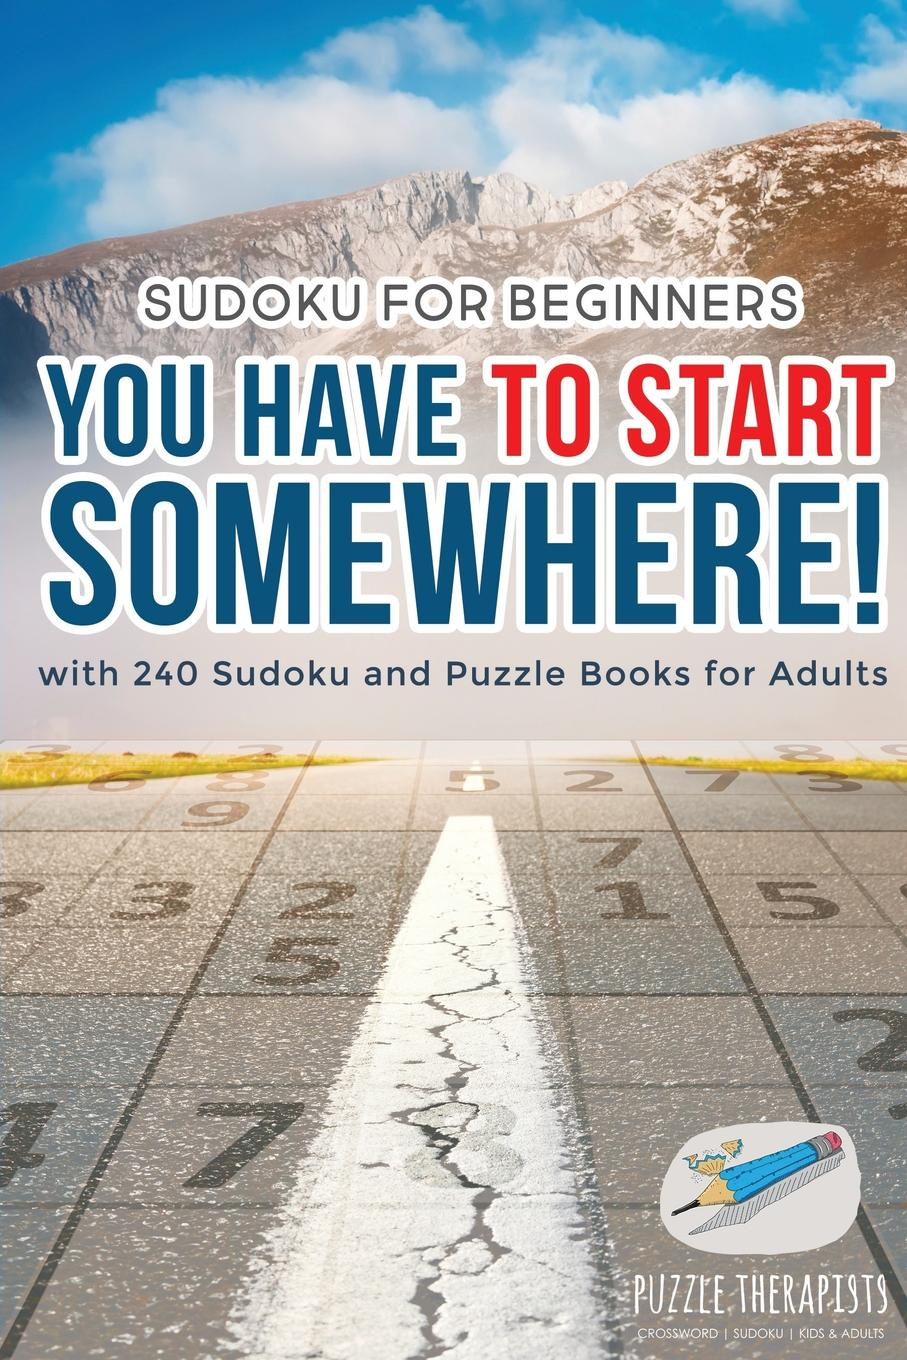 купить Puzzle Therapist You Have to Start Somewhere! . Sudoku for Beginners . with 240 Sudoku and Puzzle Books for Adults по цене 889 рублей